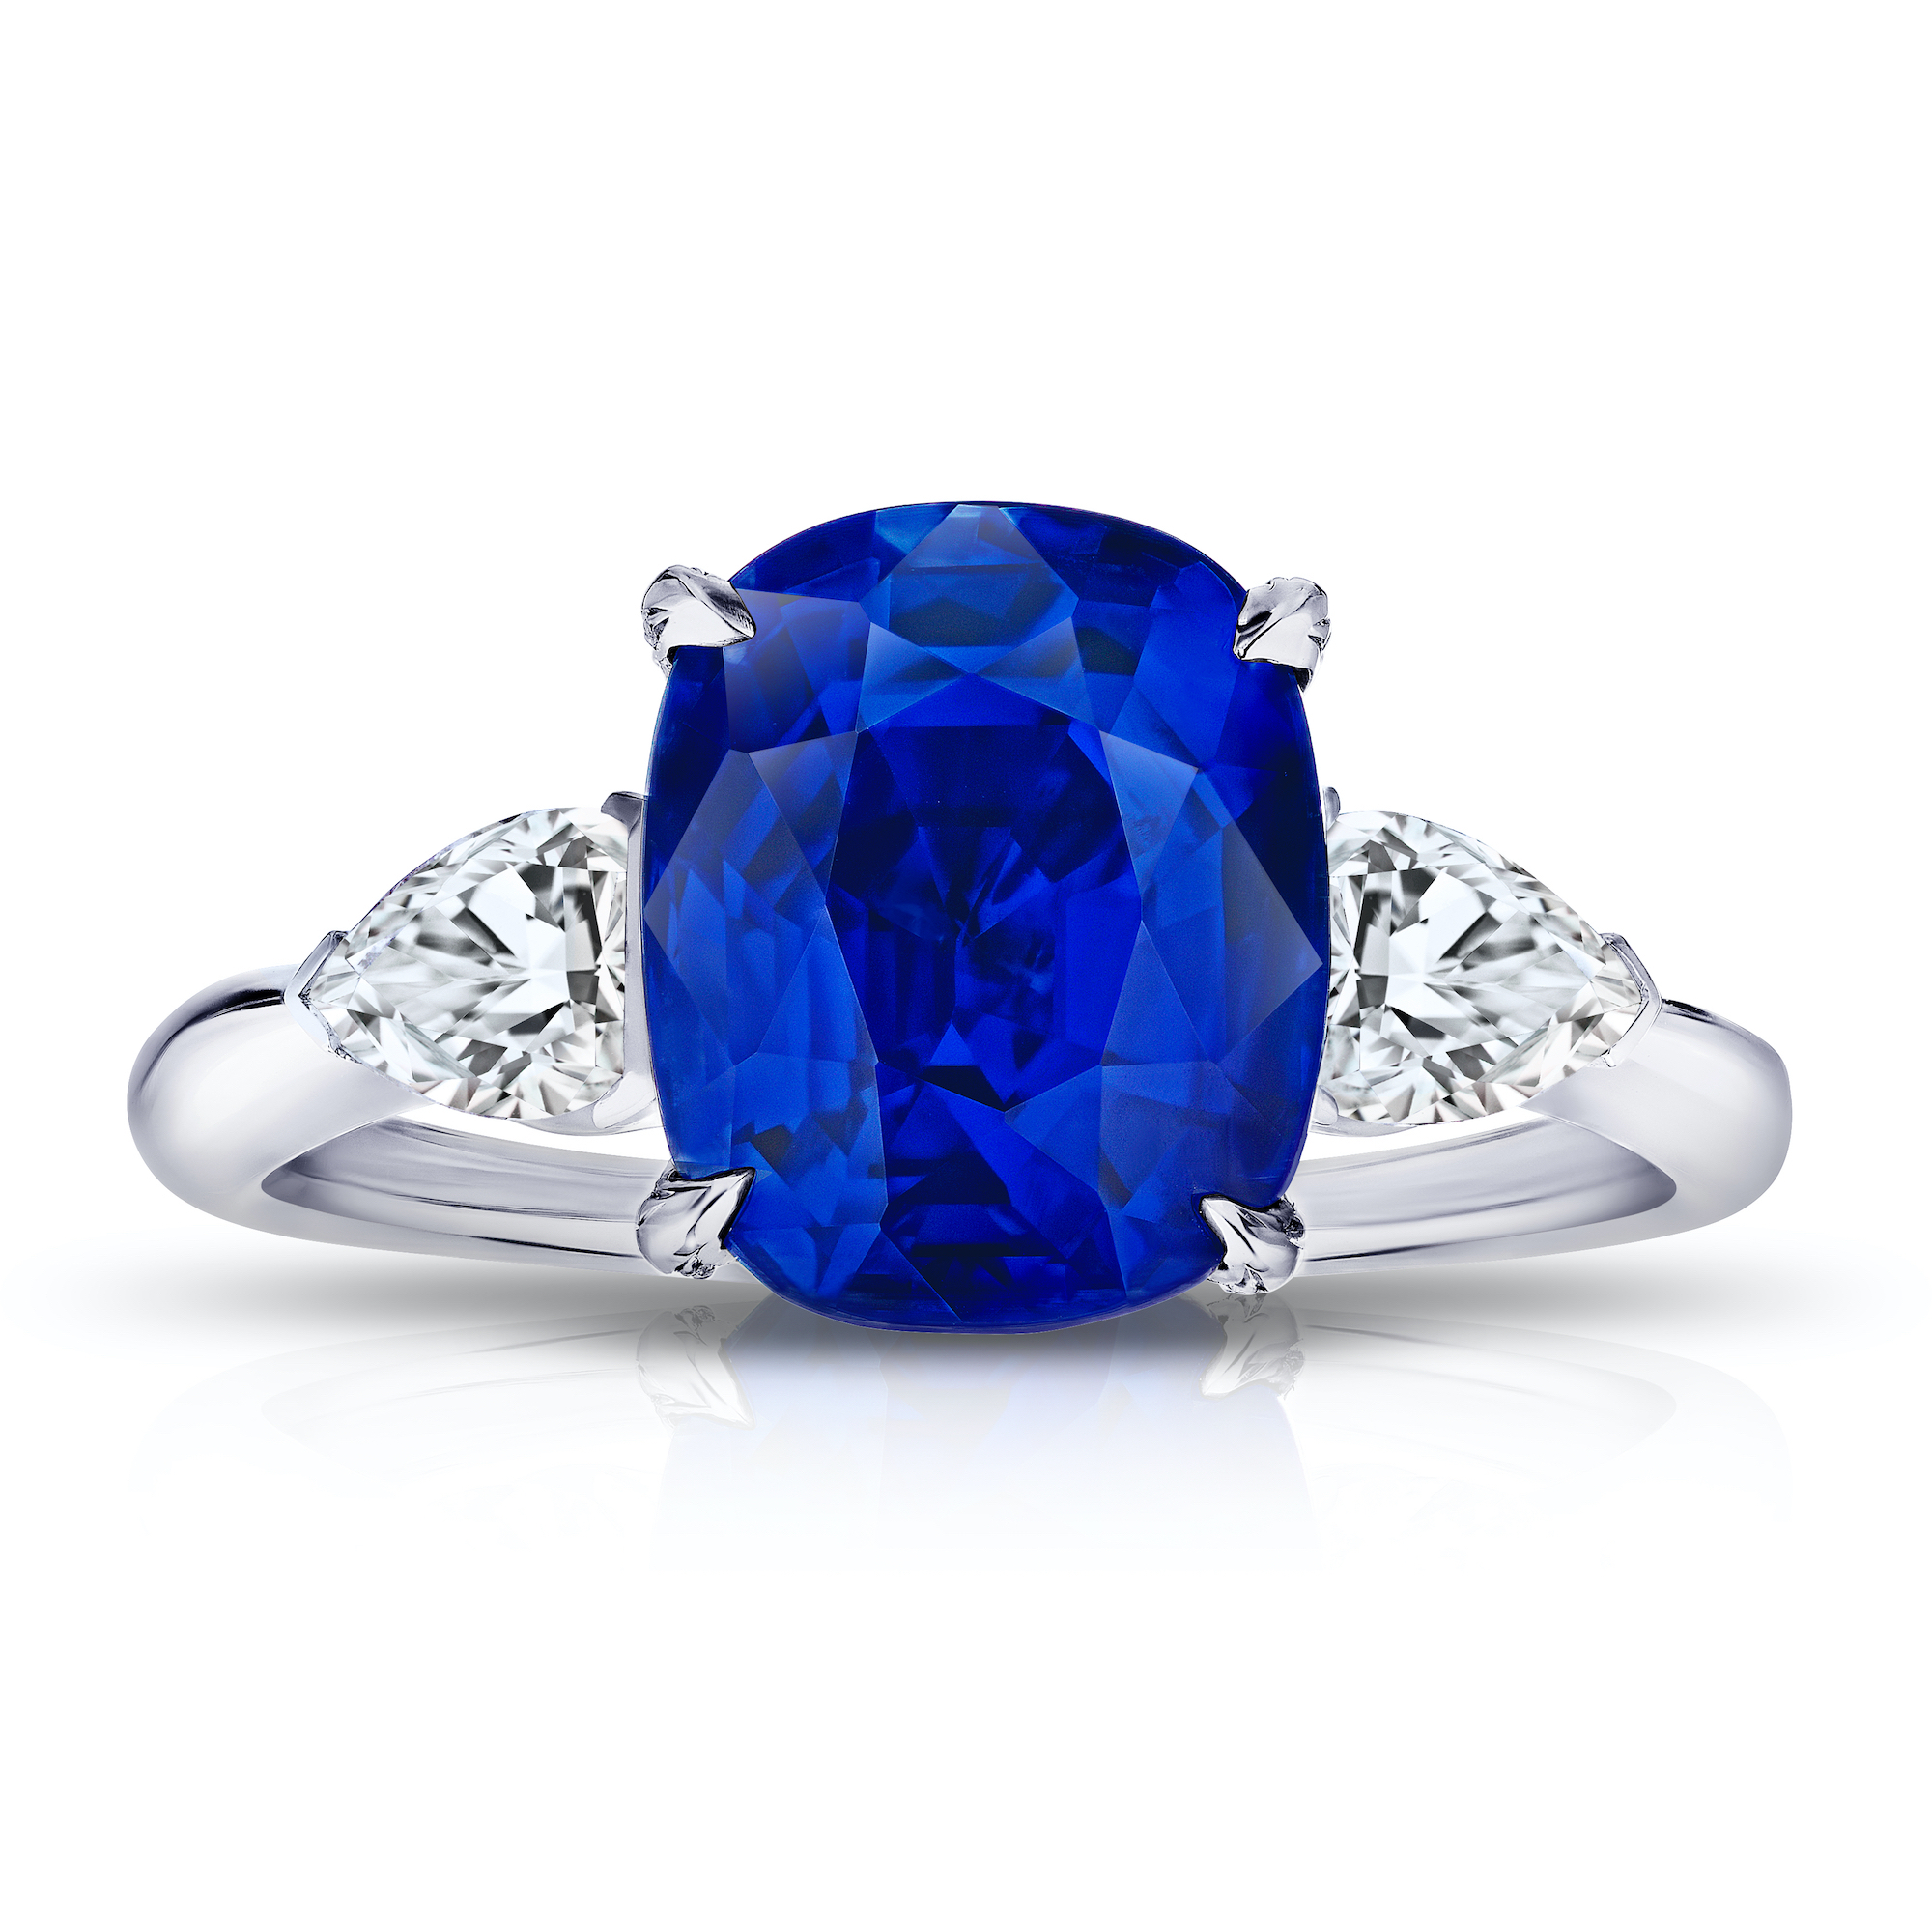 Exquisite blue sapphire and platinum ring with pear shaped diamonds on the shoulders.